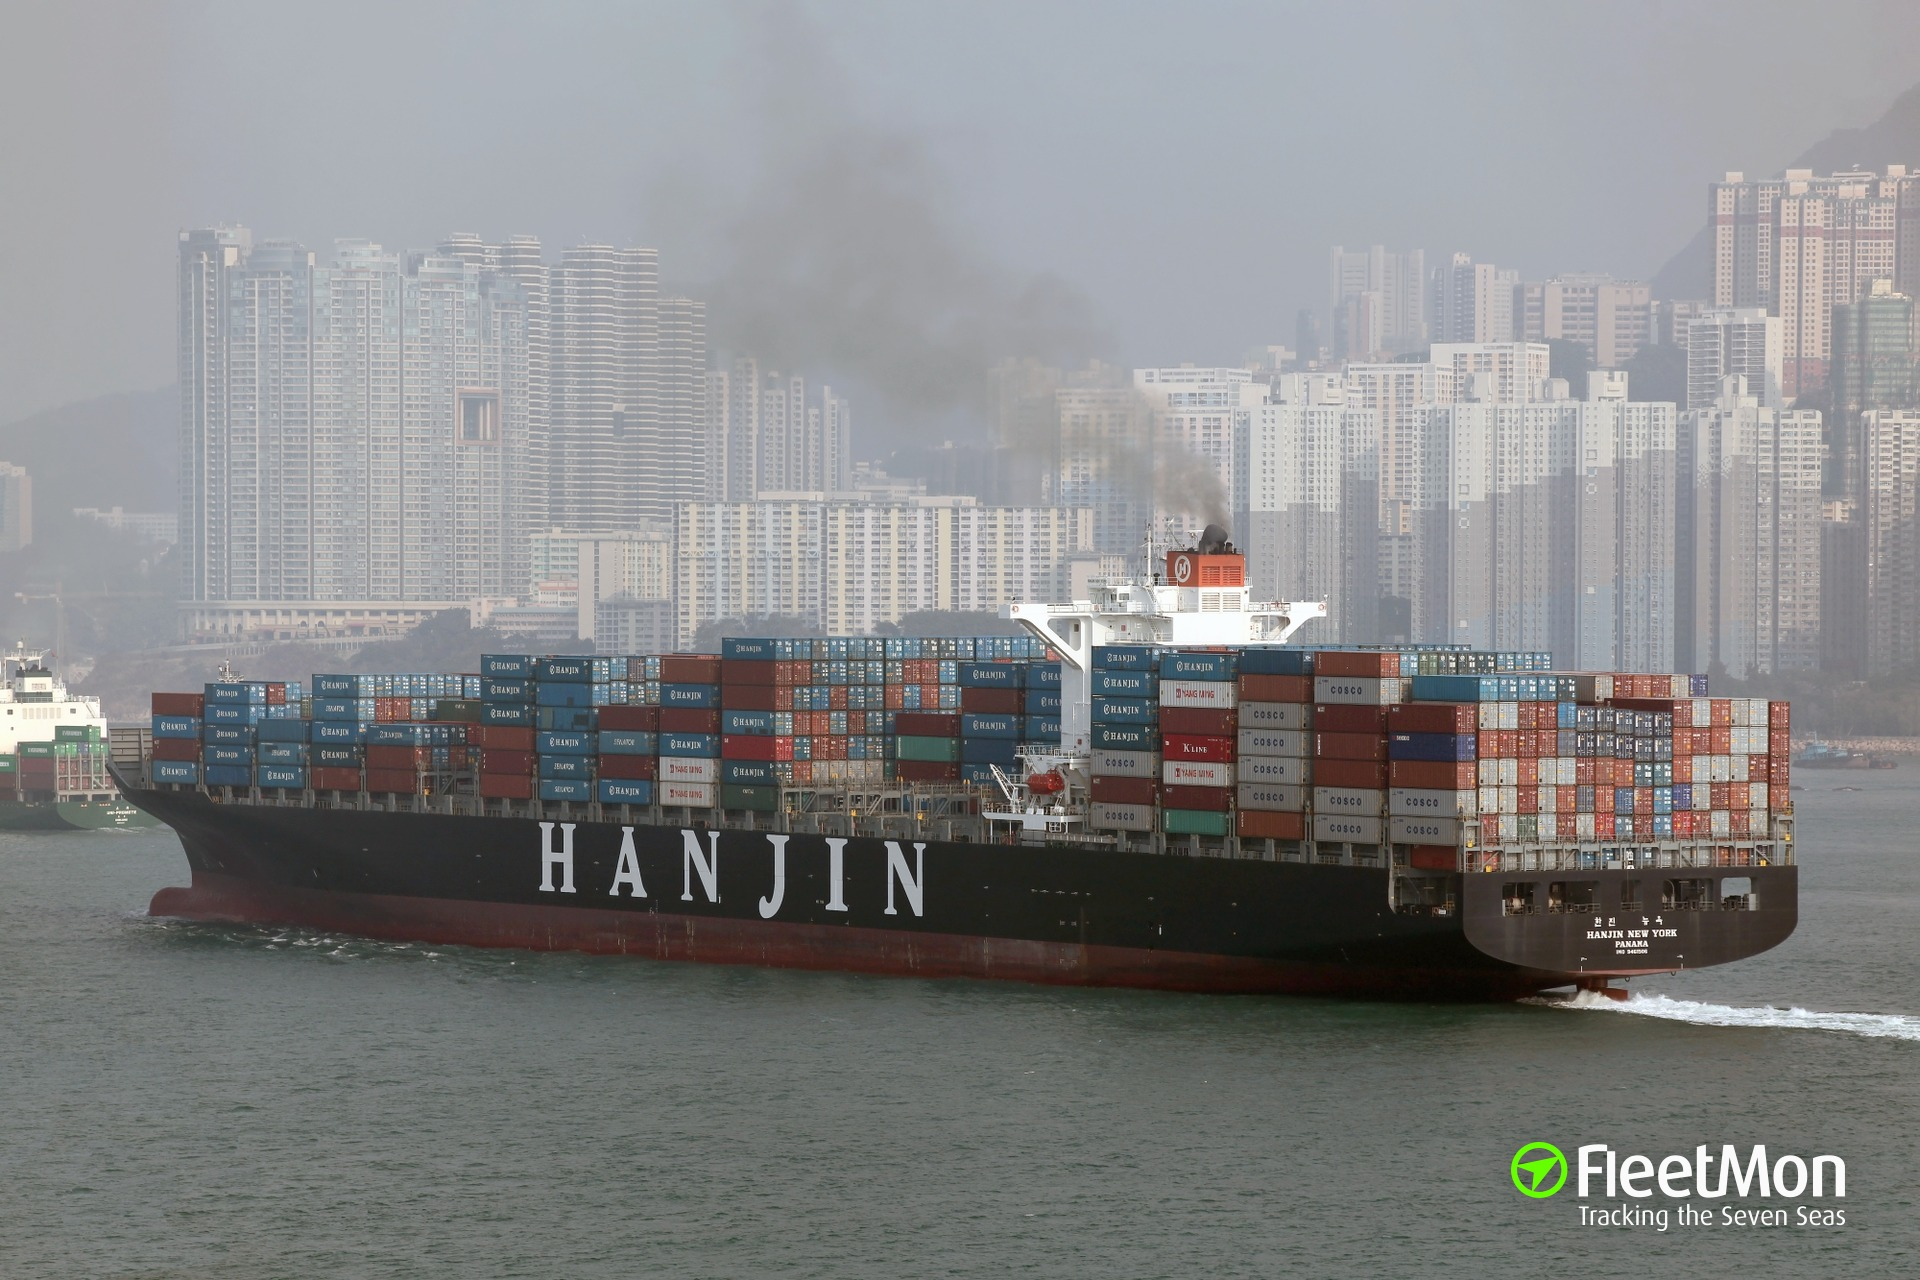 Man overboard from boxship Hanjin New York